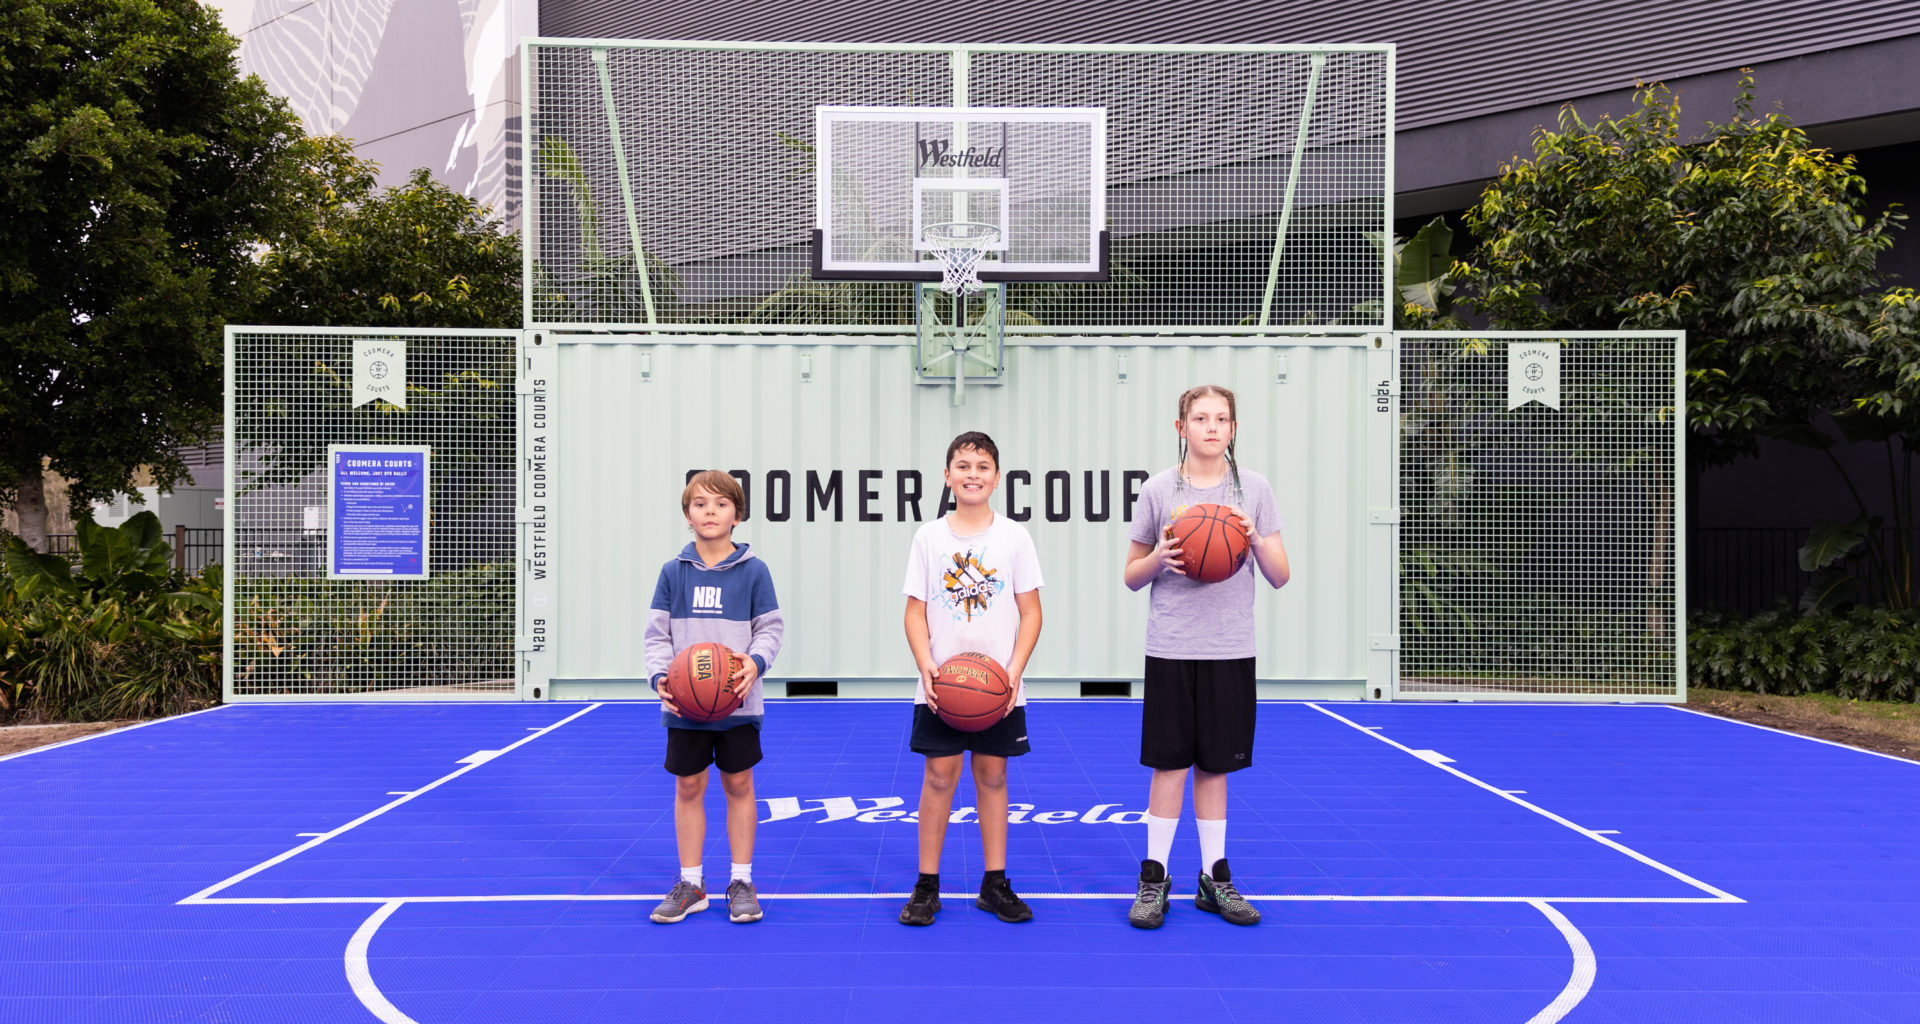 Westfield Coomera launches their own community Basketball Court